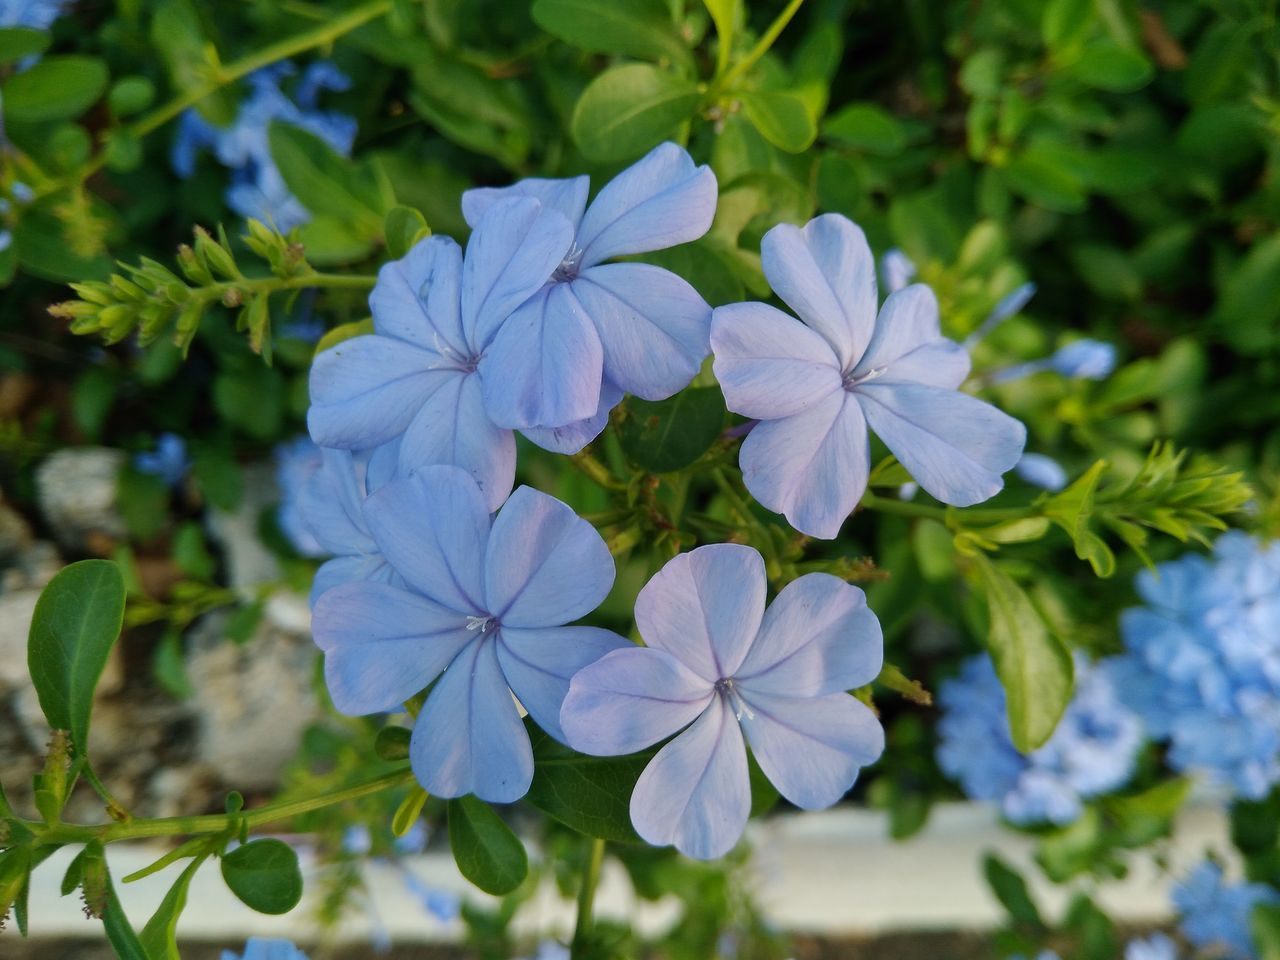 flower, growth, beauty in nature, petal, nature, fragility, freshness, day, plant, flower head, outdoors, blooming, no people, leaf, close-up, periwinkle